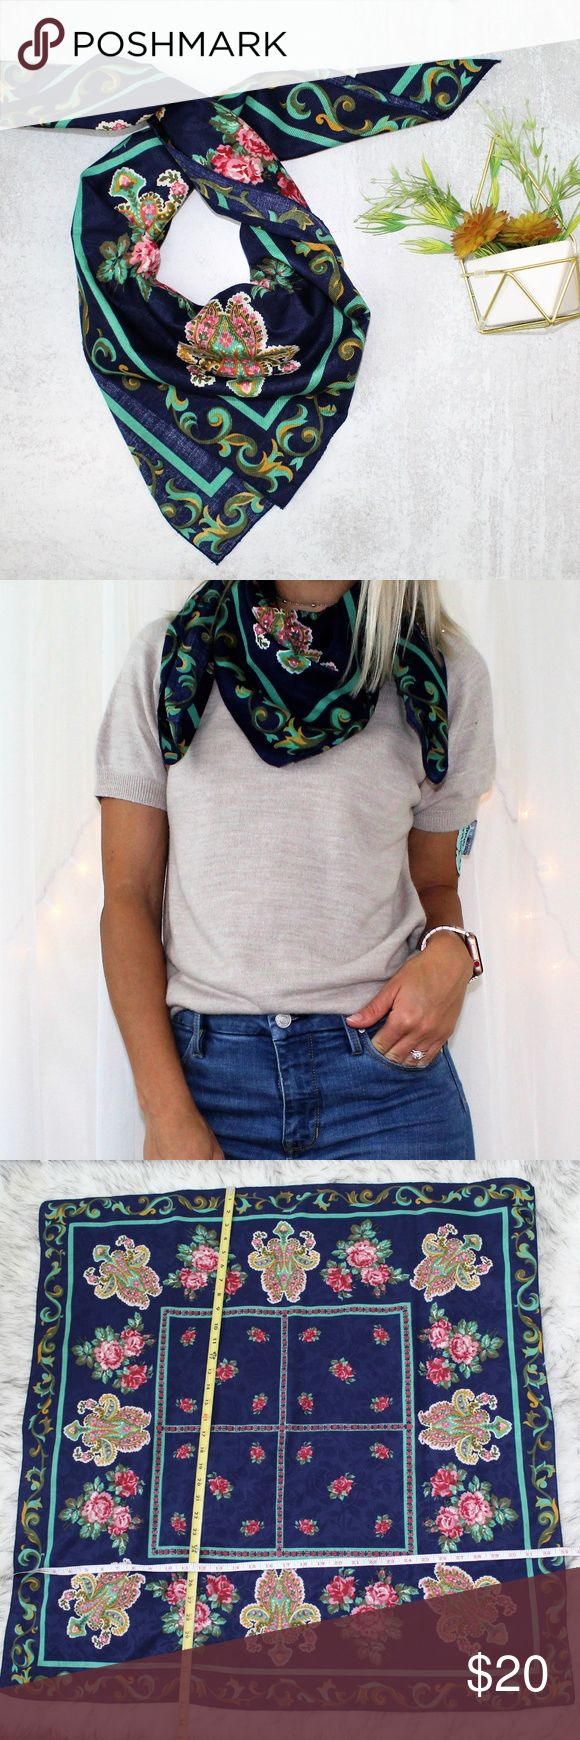 Floral Square Navy Scarf/Head Wrap Accessory Floral Square Navy Scarf/Head Wrap …   – My Posh Picks